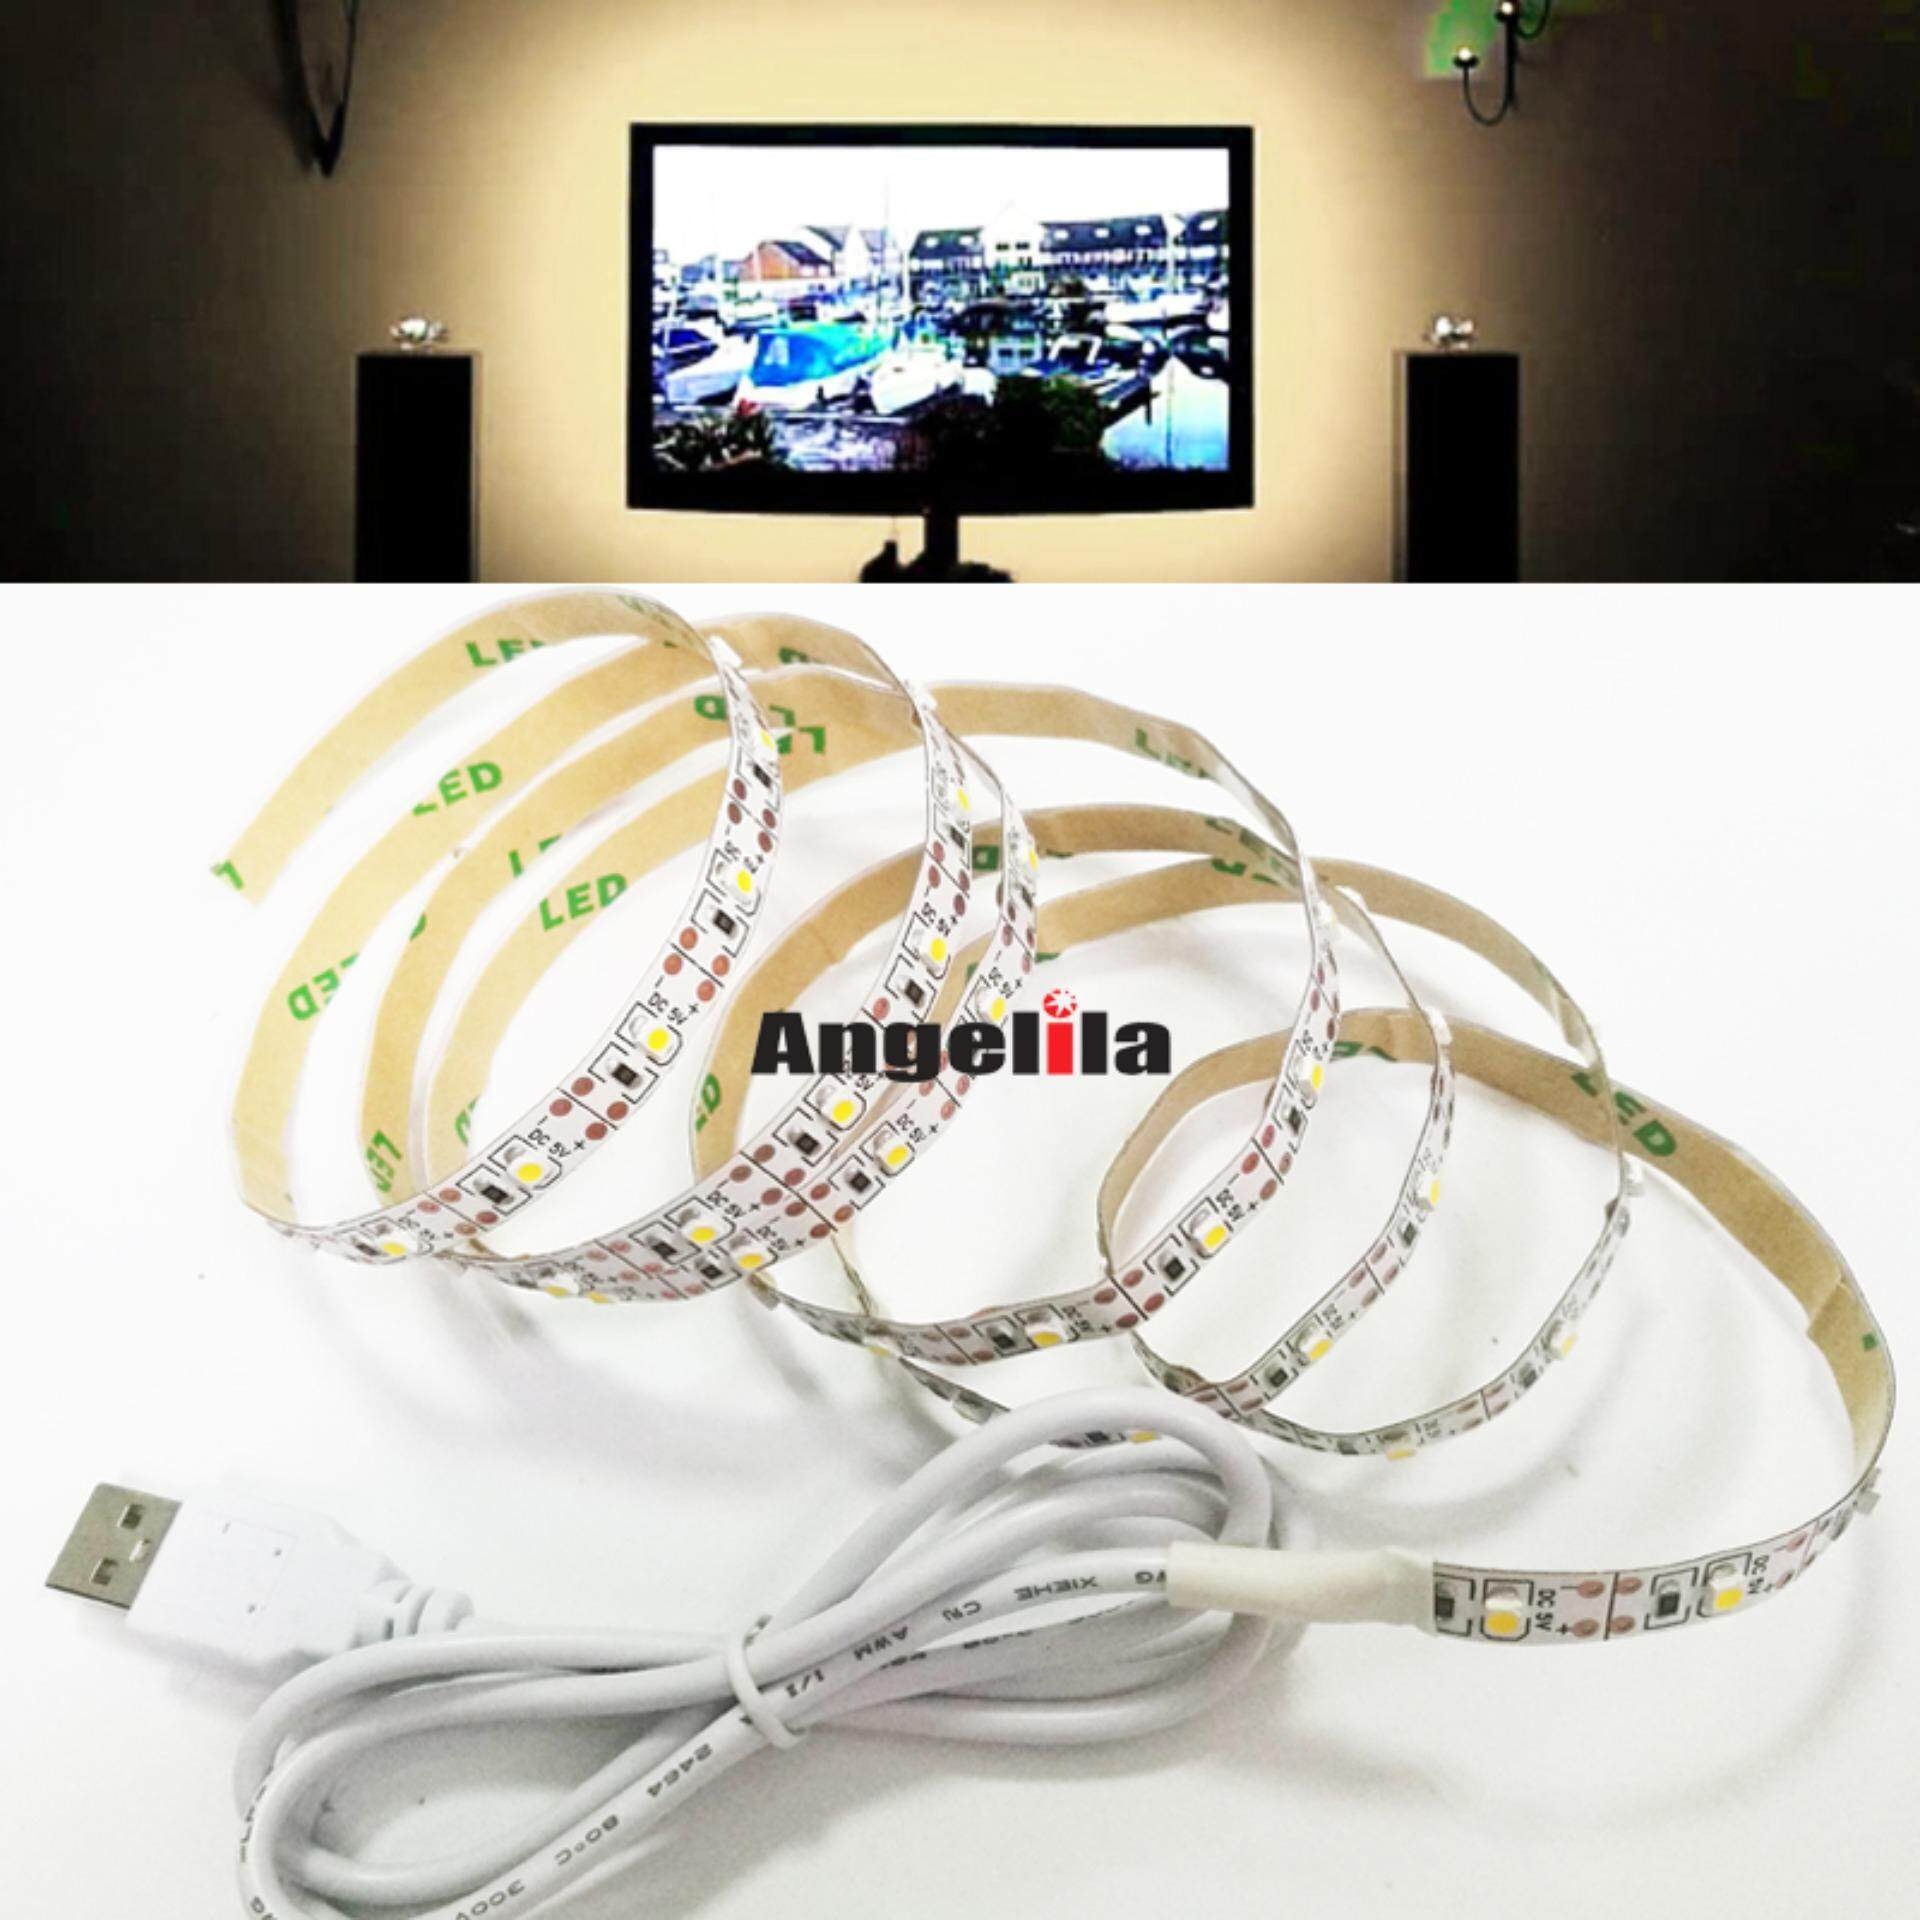 separation shoes 7b460 b98cf Angelila White Color 4 Meters 5V USB Cable LED Strip Lights ...